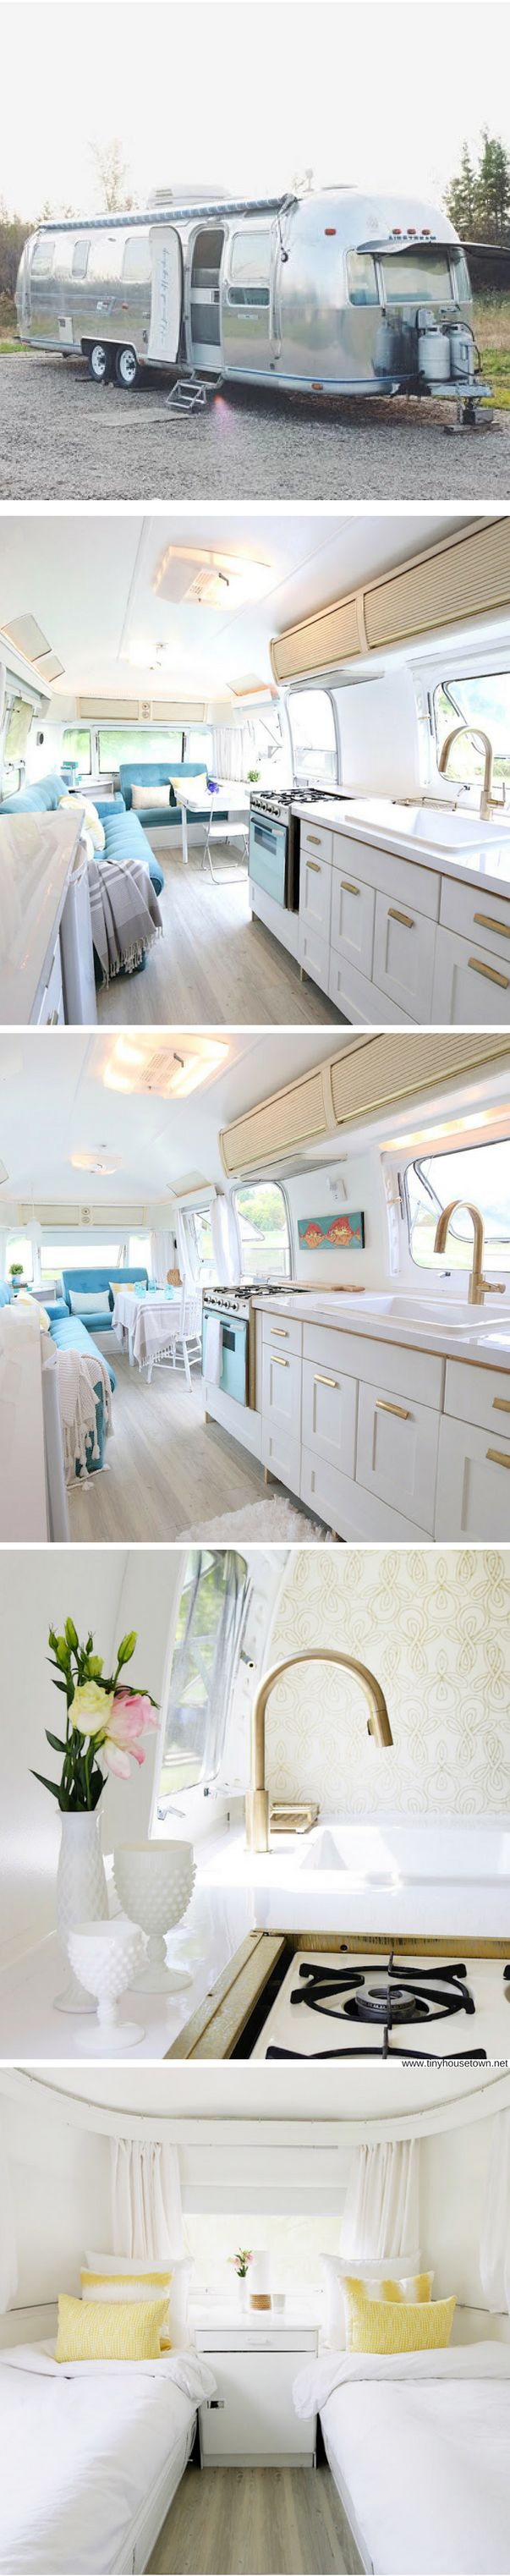 A converted 1976 Airstream trailer